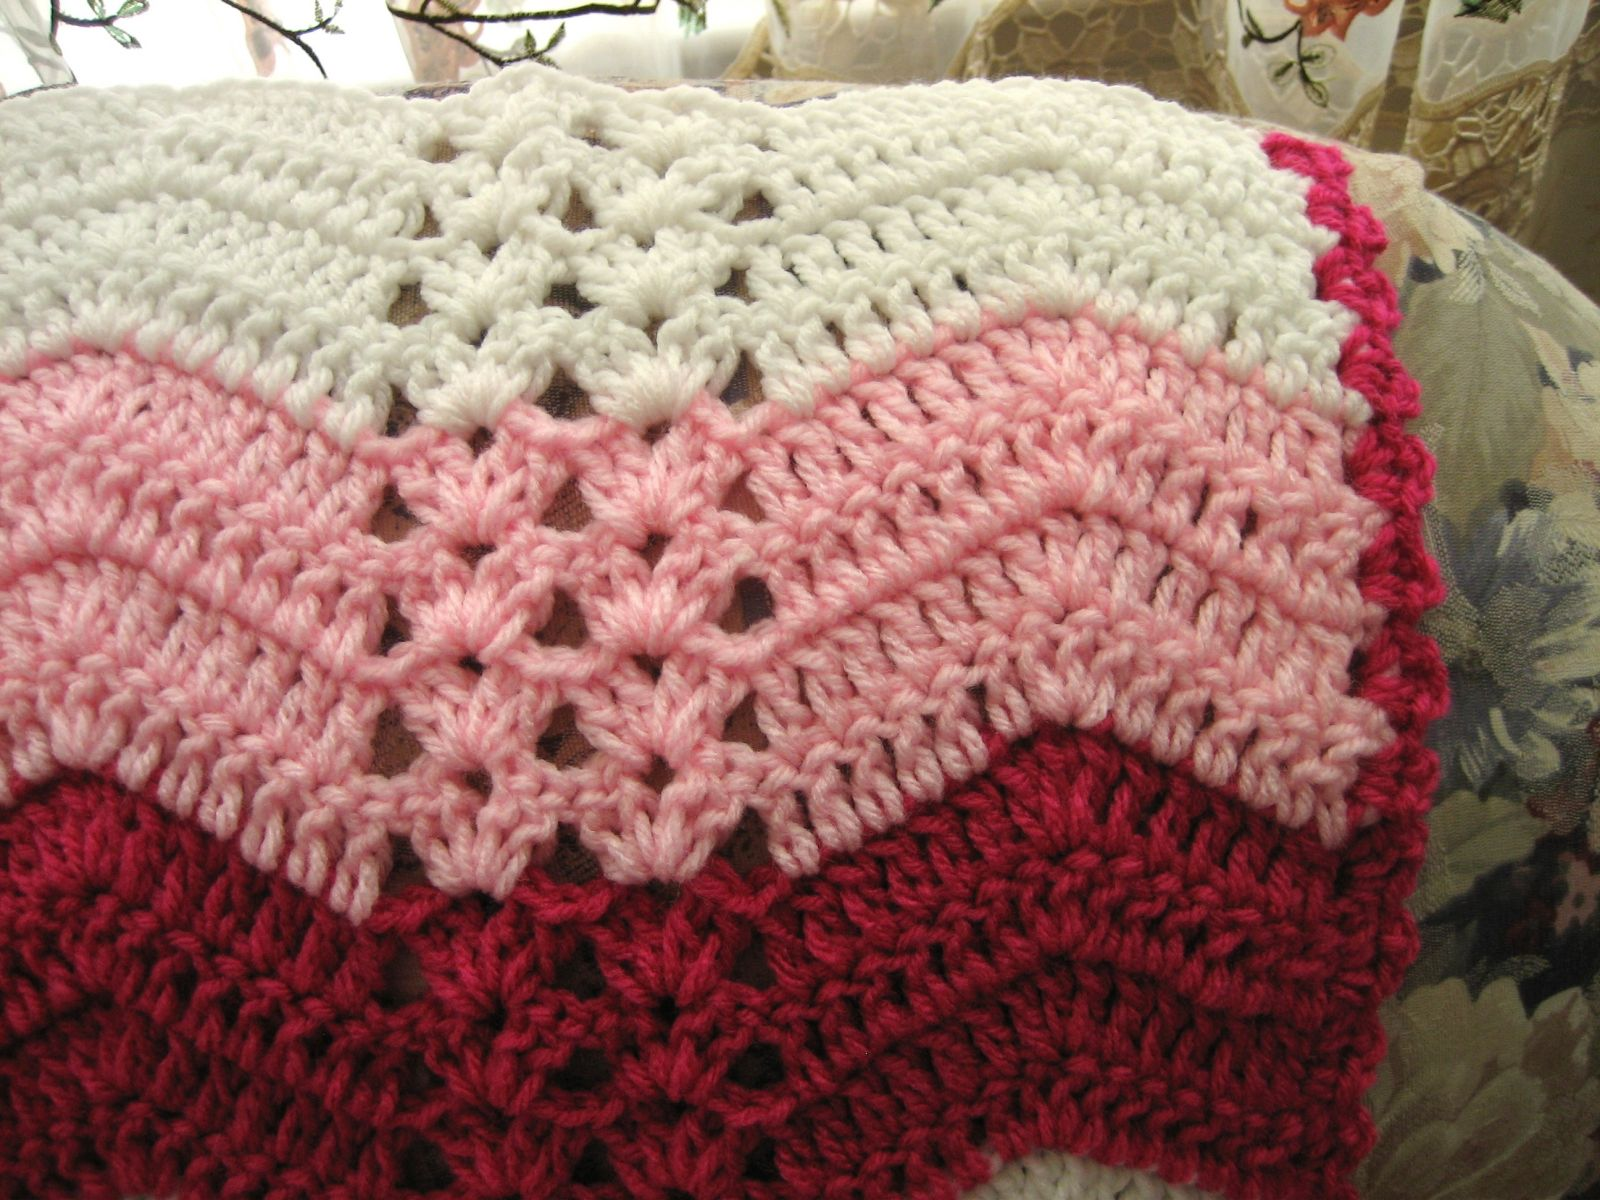 Crochet Ripple Afghan Pattern Instructions : Ripple Crochet Pattern Related Keywords & Suggestions ...